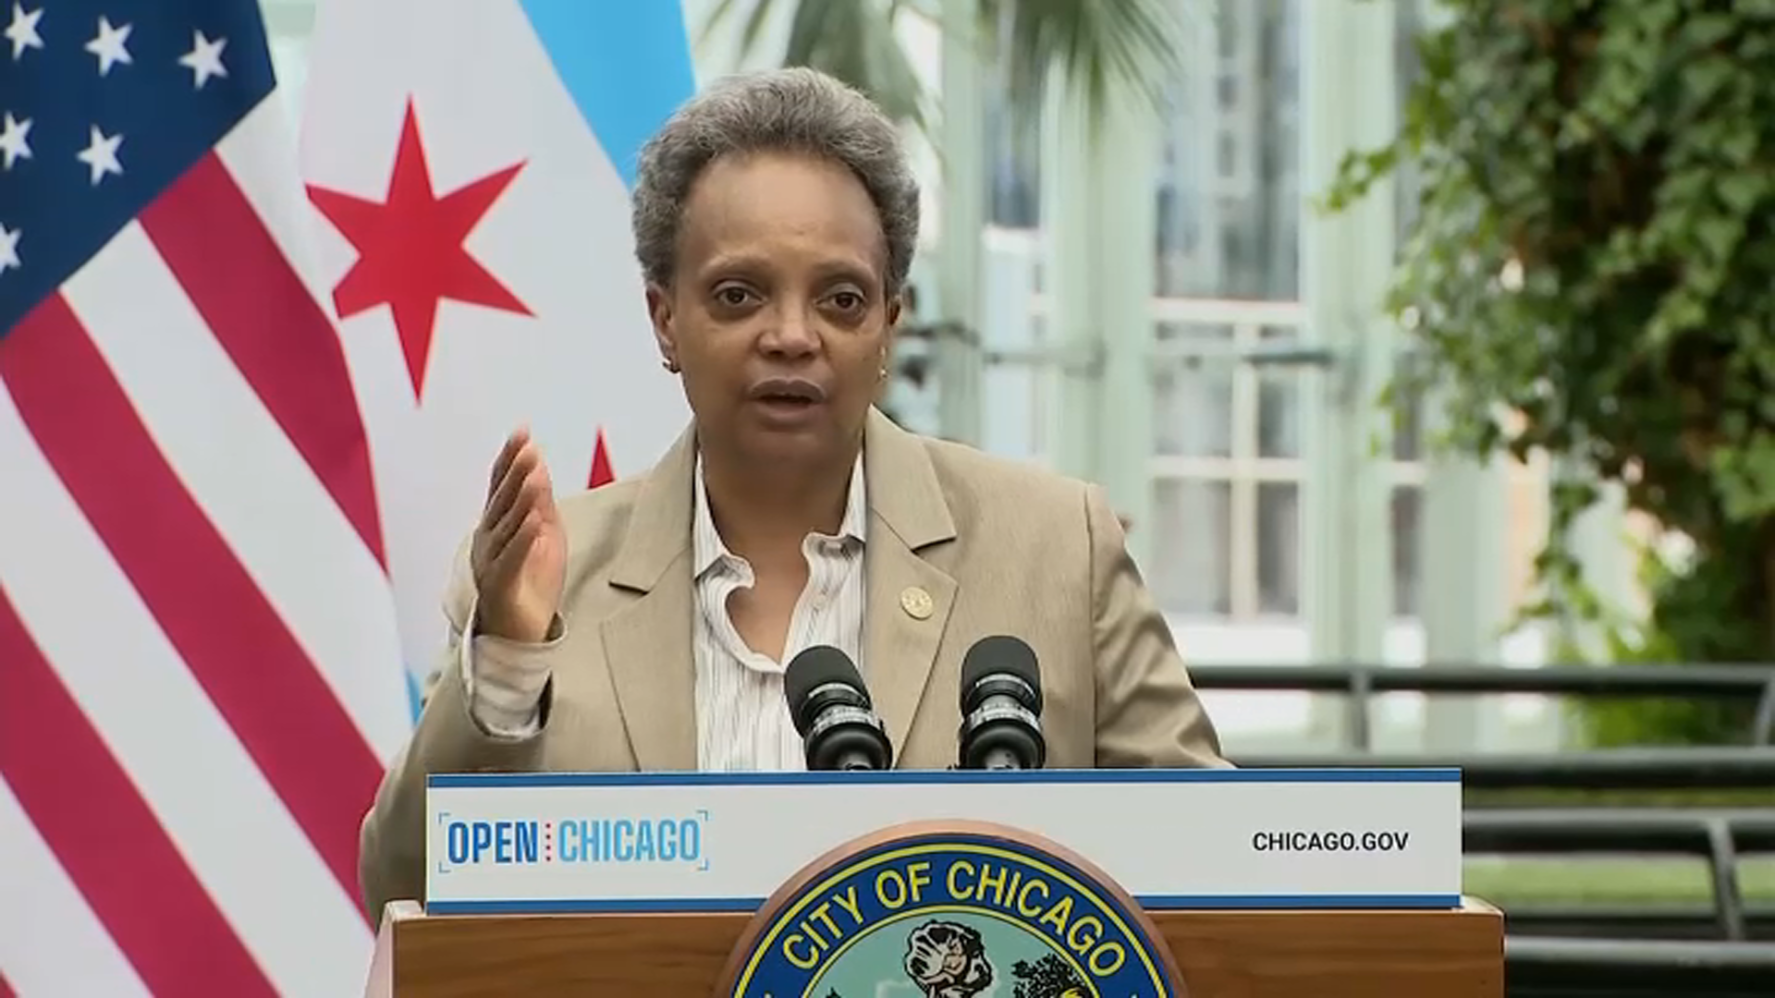 Chicago reopening: City moving to Phase 5 with rest of Illinois, Mayor Lightfoot says